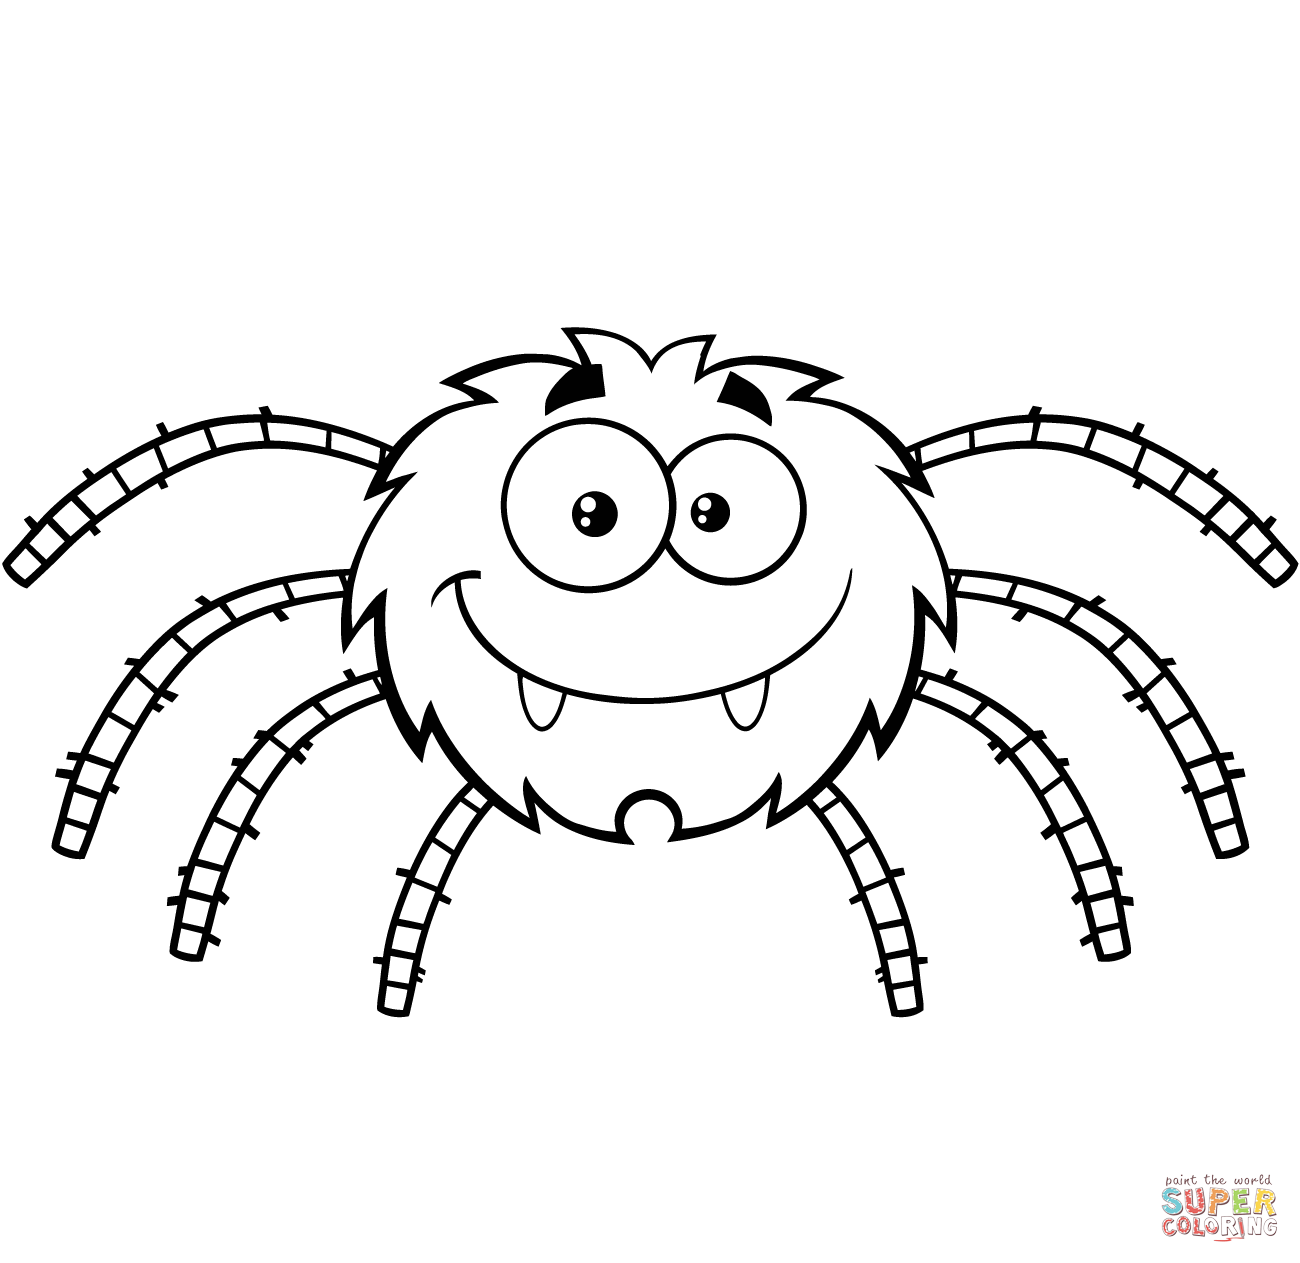 Redback Spider coloring #10, Download drawings